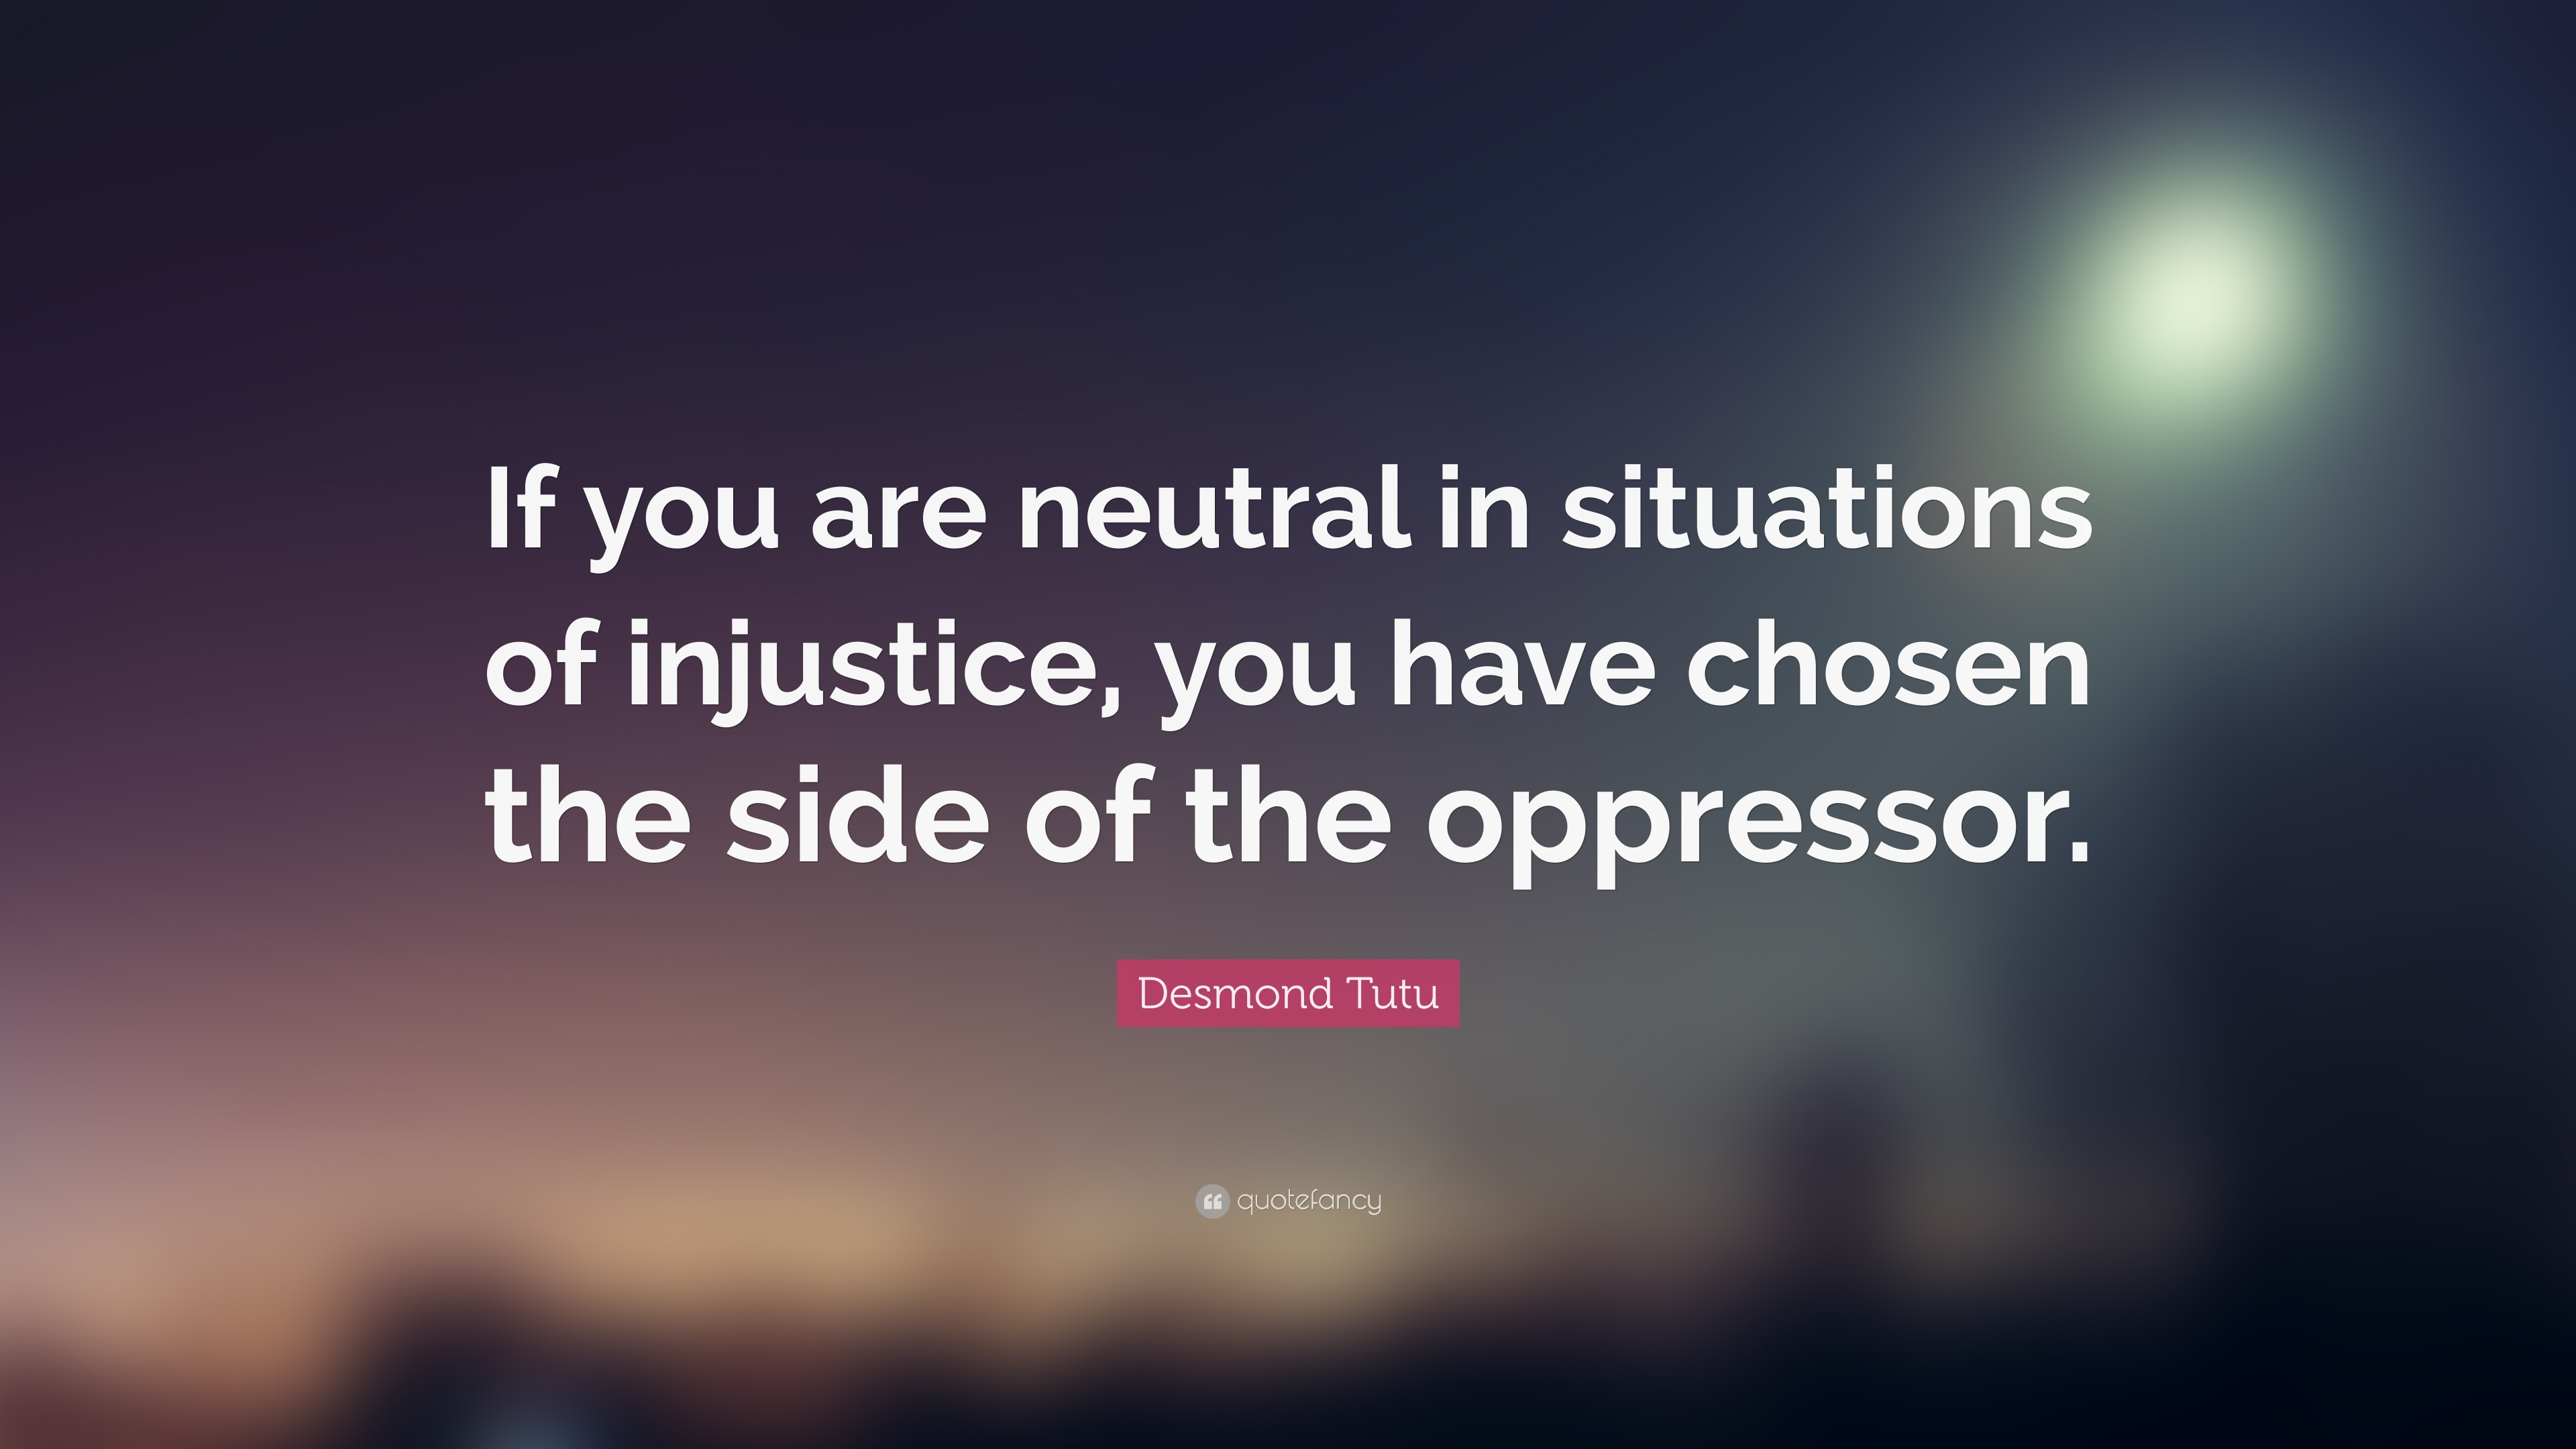 Socrates Wallpaper Quotes Desmond Tutu Quote If You Are Neutral In Situations Of